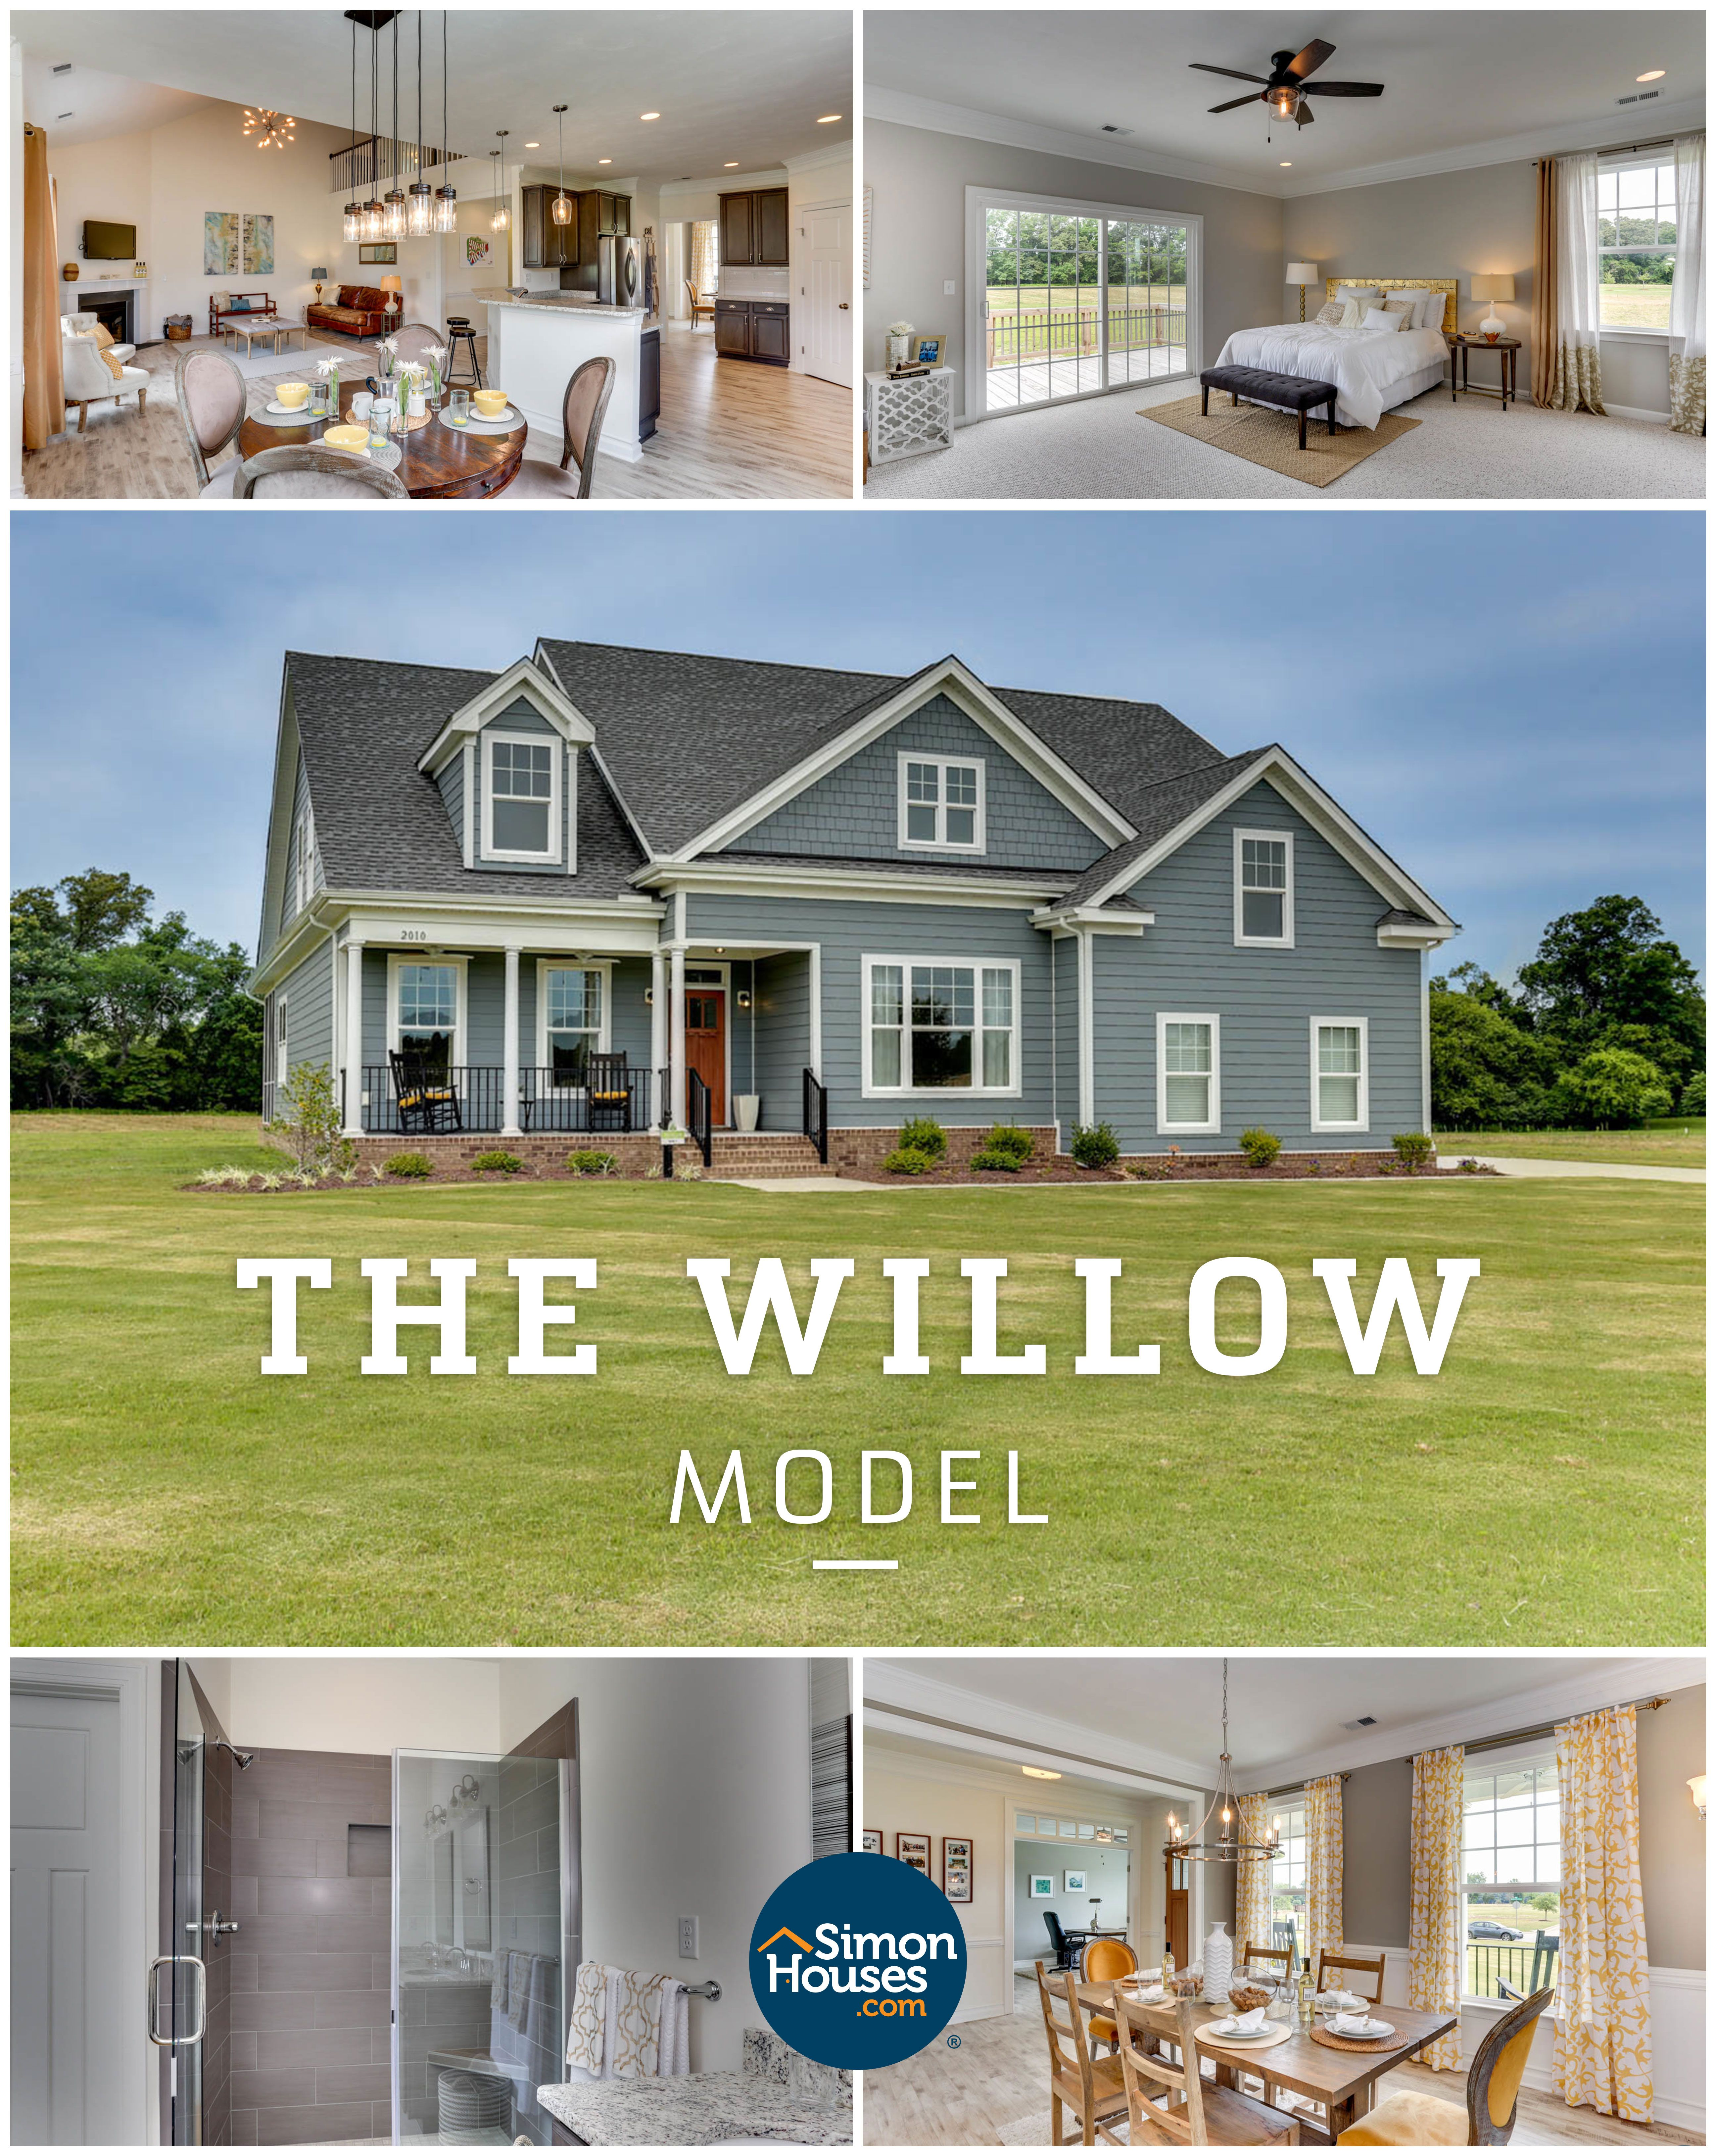 Build This Beautiful Home Model In Chesapeake Or Suffolk With An Amazing Local Builder You Can Build On You Custom Built Homes Home Connections Local Builders